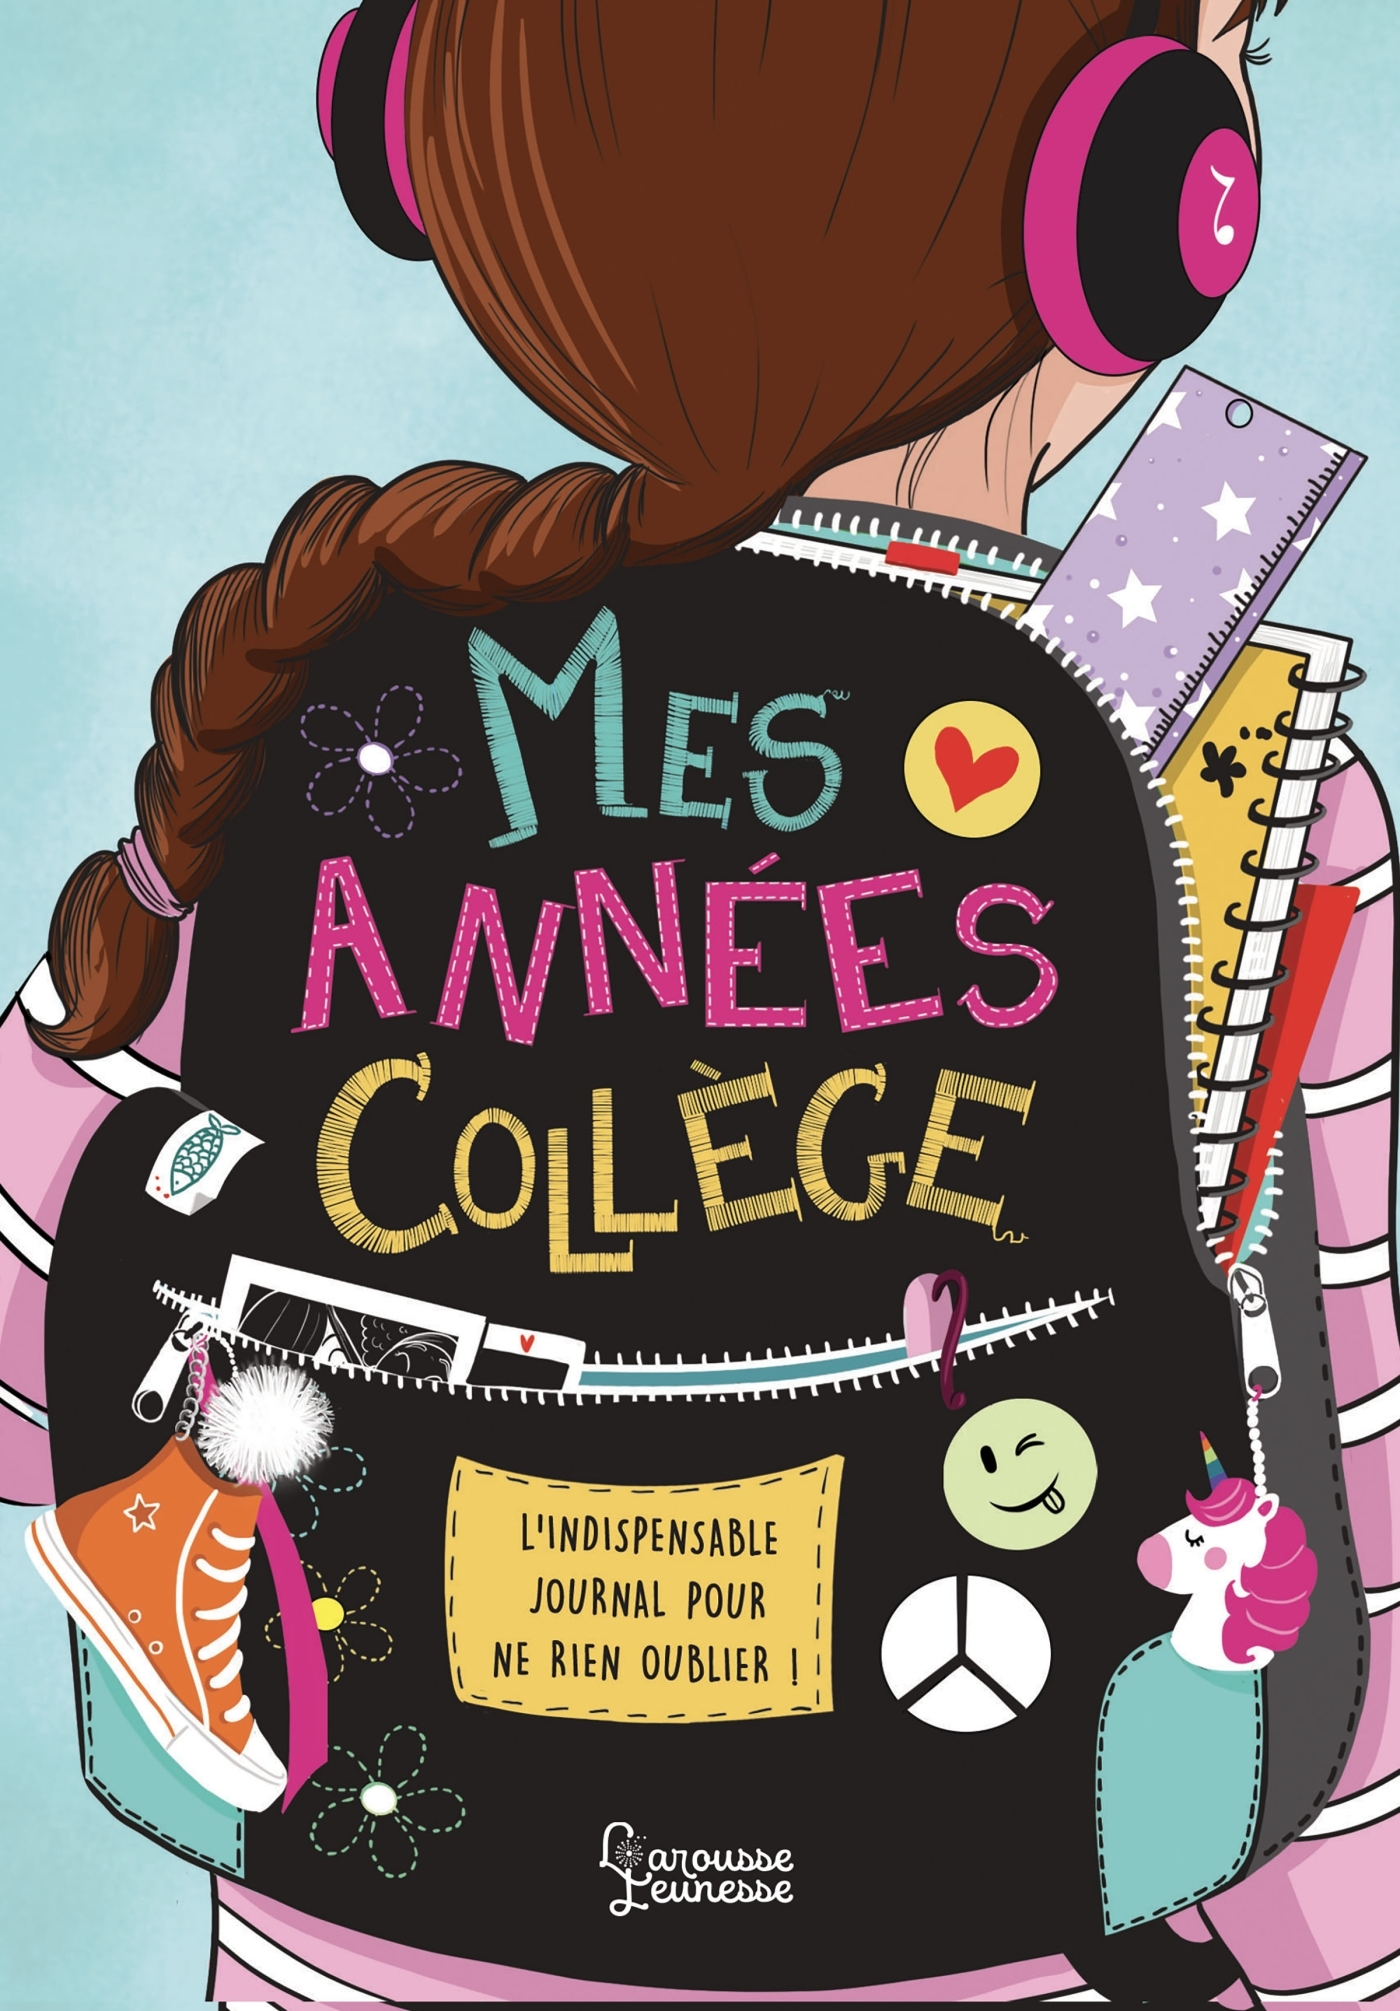 MES ANNEES COLLEGE